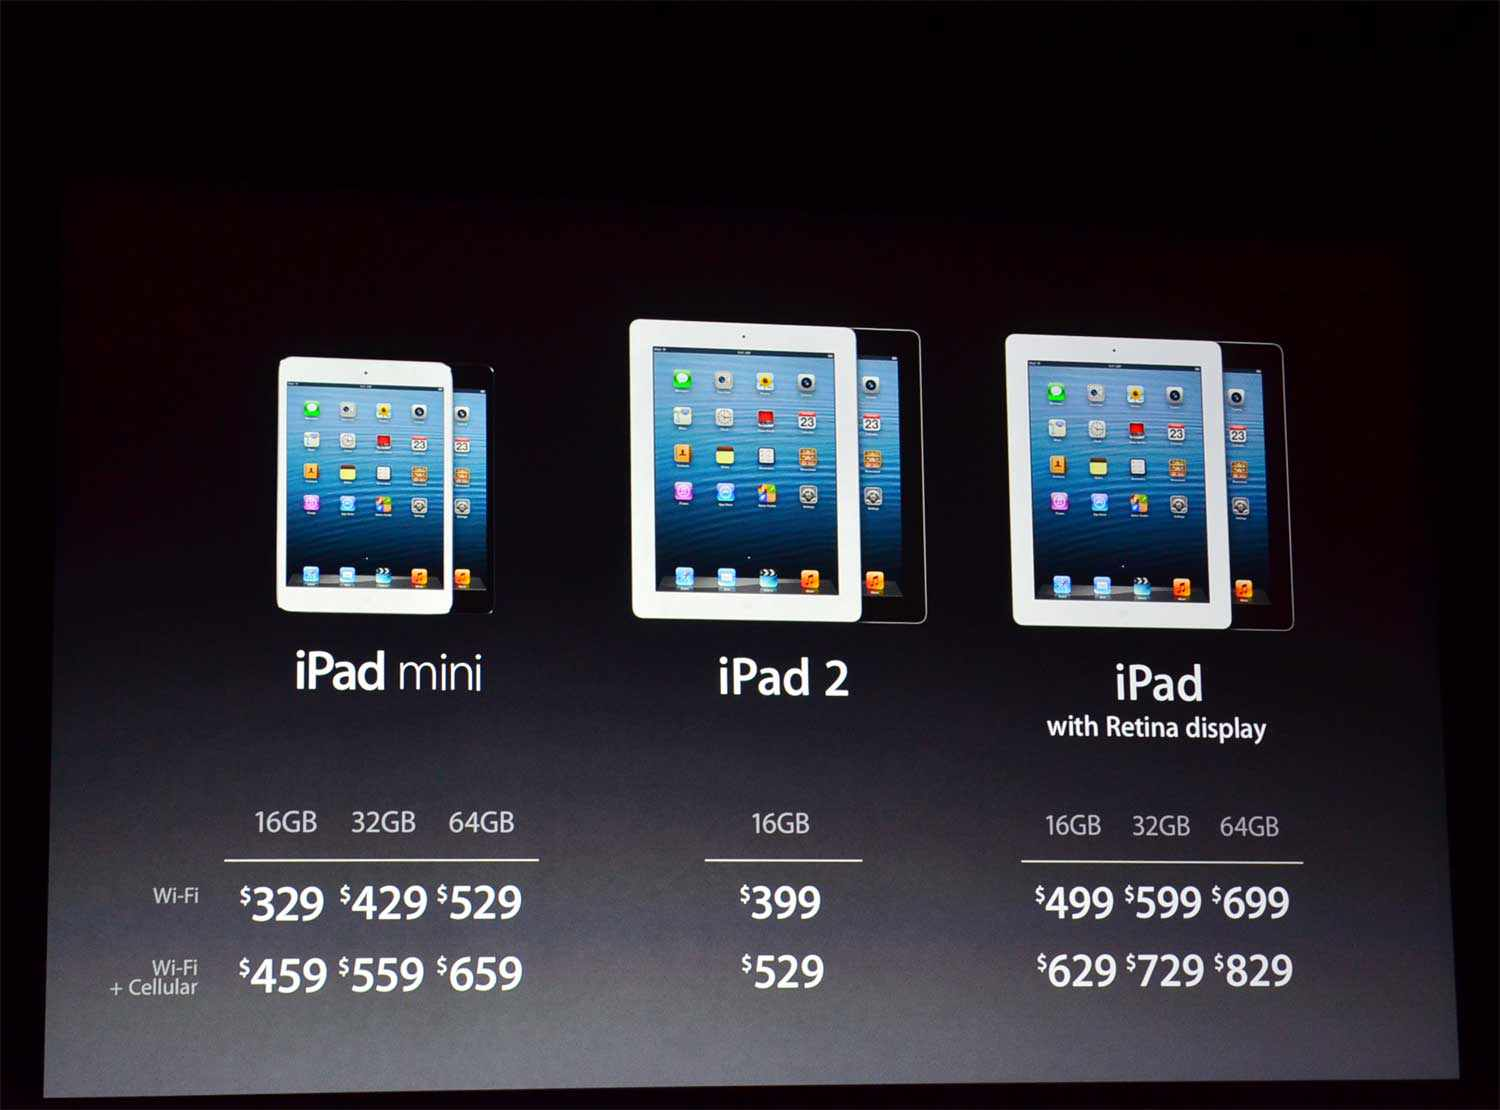 Harga Tablet Apple IPad Mini Dan IPad 4